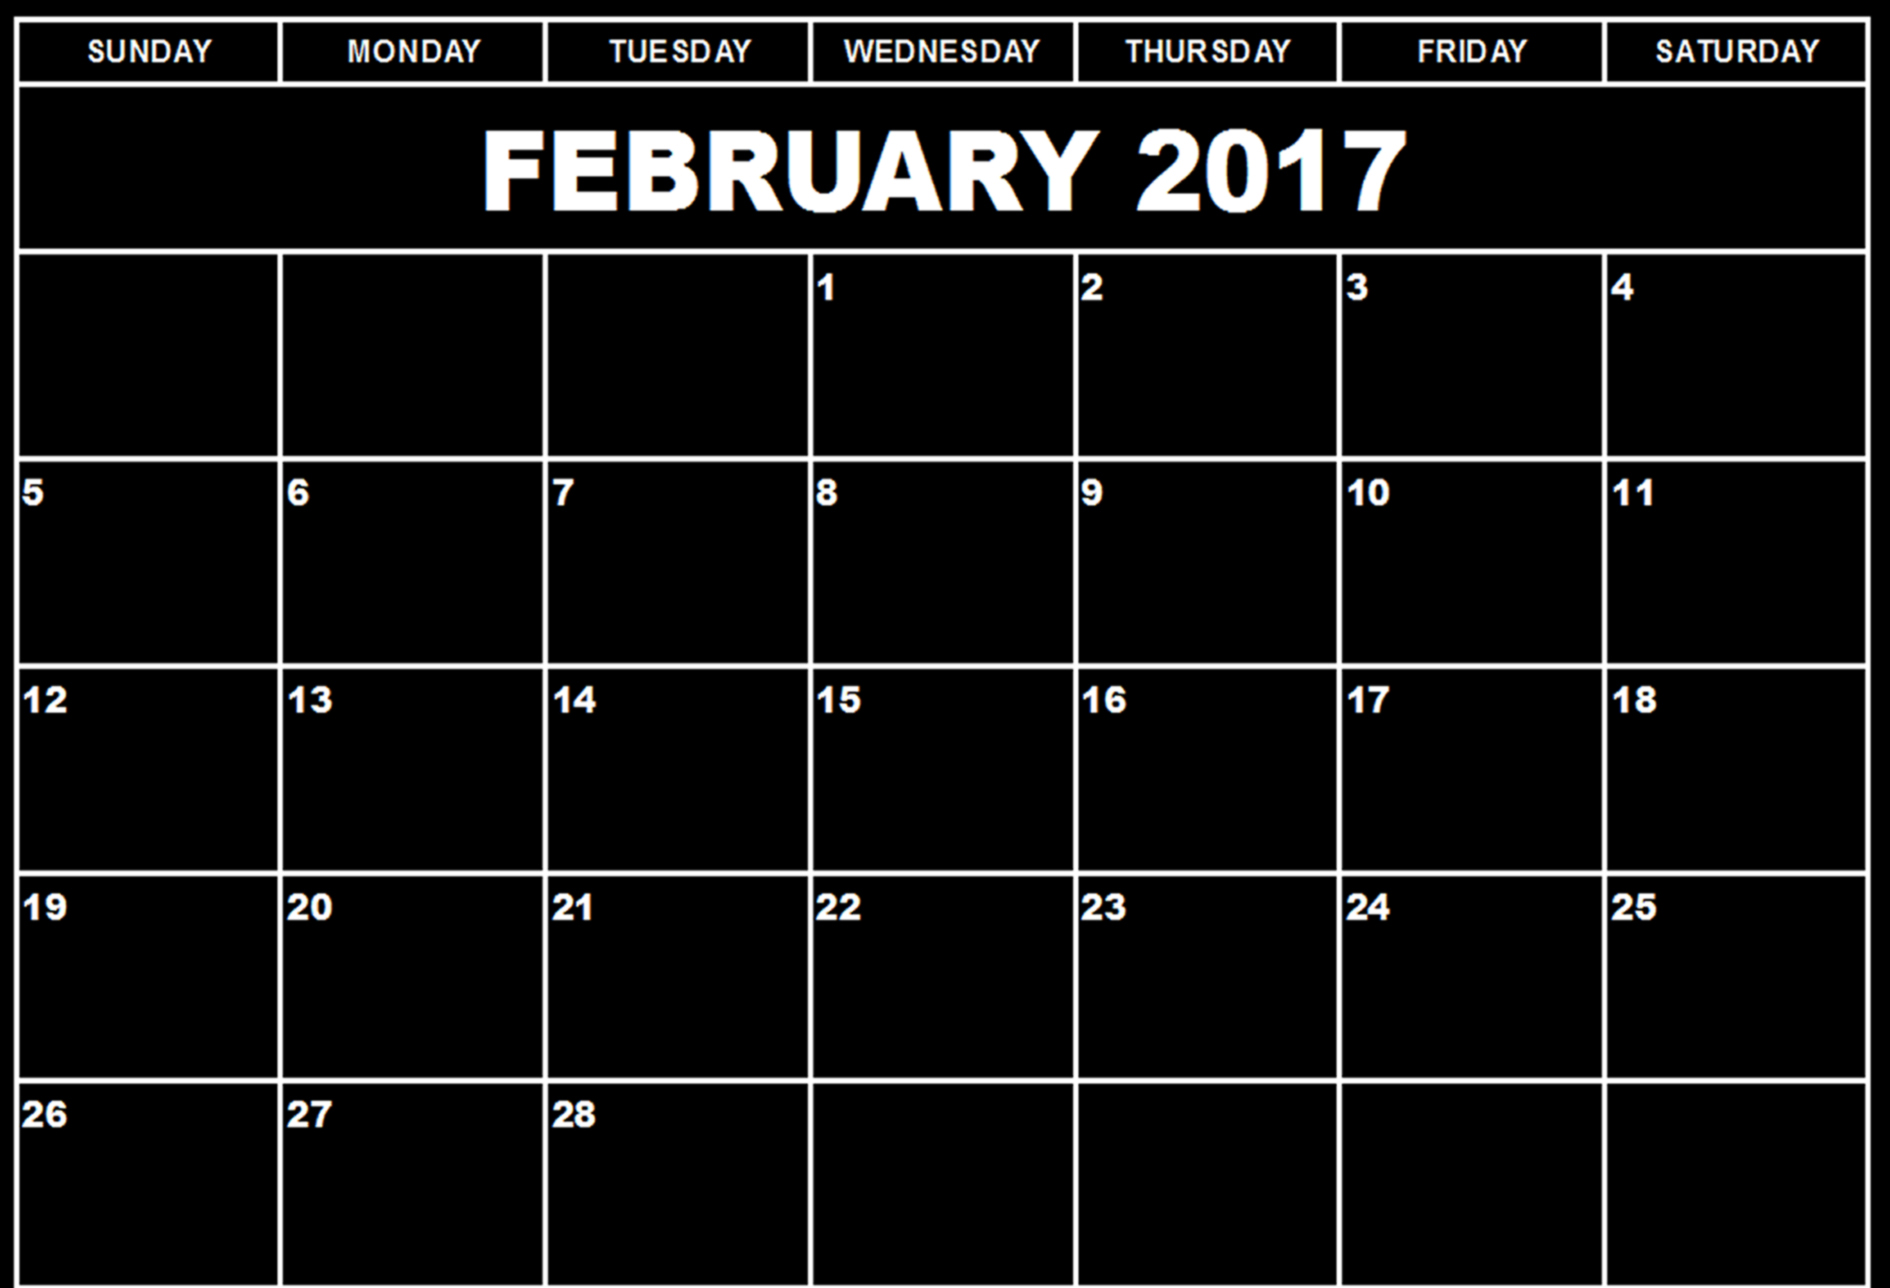 Download February 2017 calendars